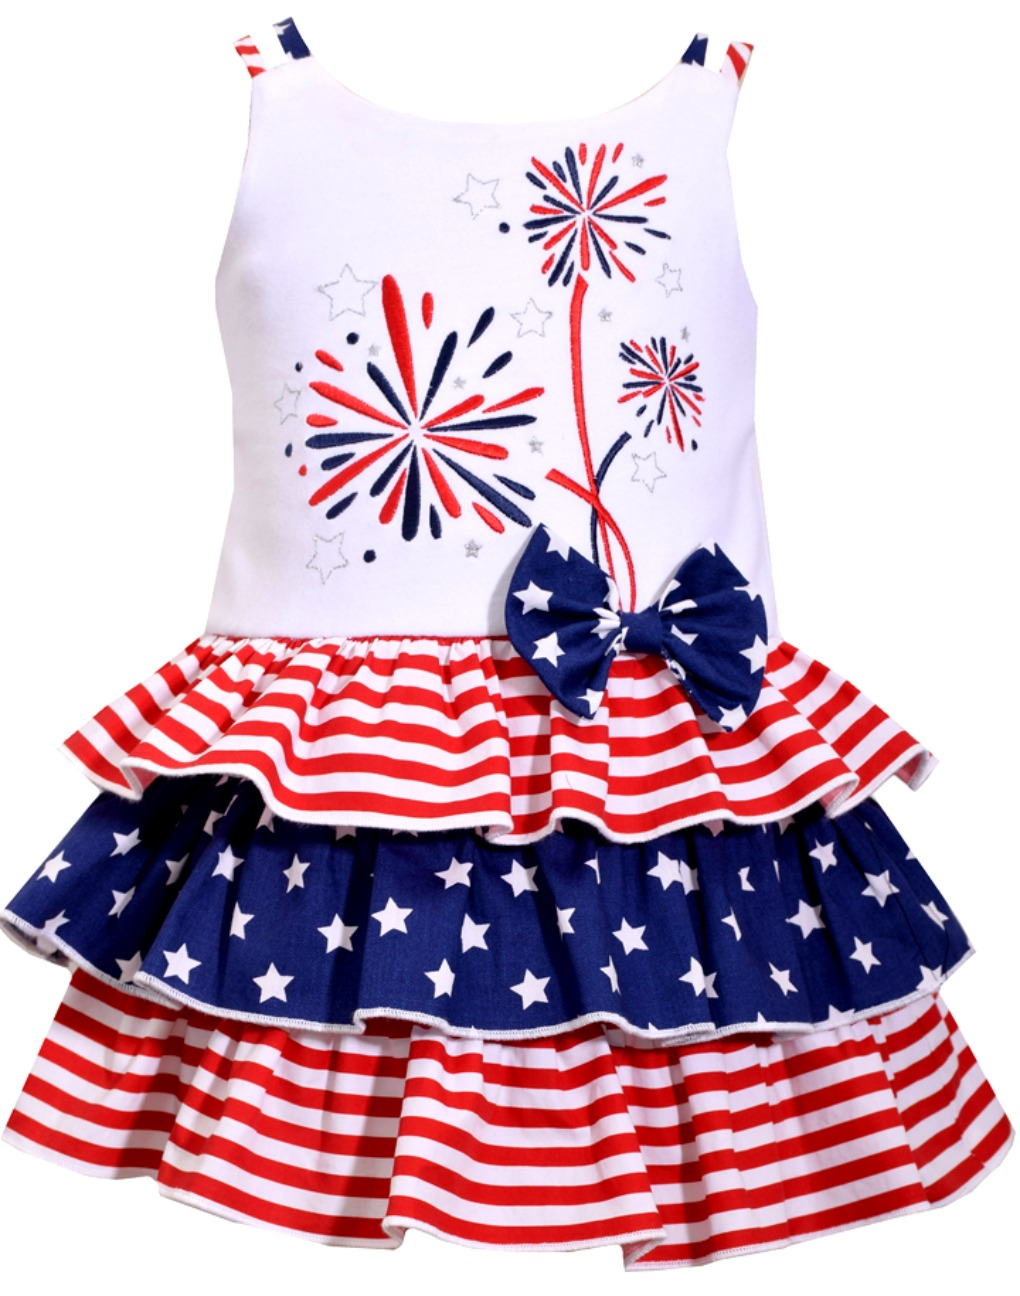 Bonnie Jean NEW dress baby girl 12 24 mos patriotic July 4th red white blue